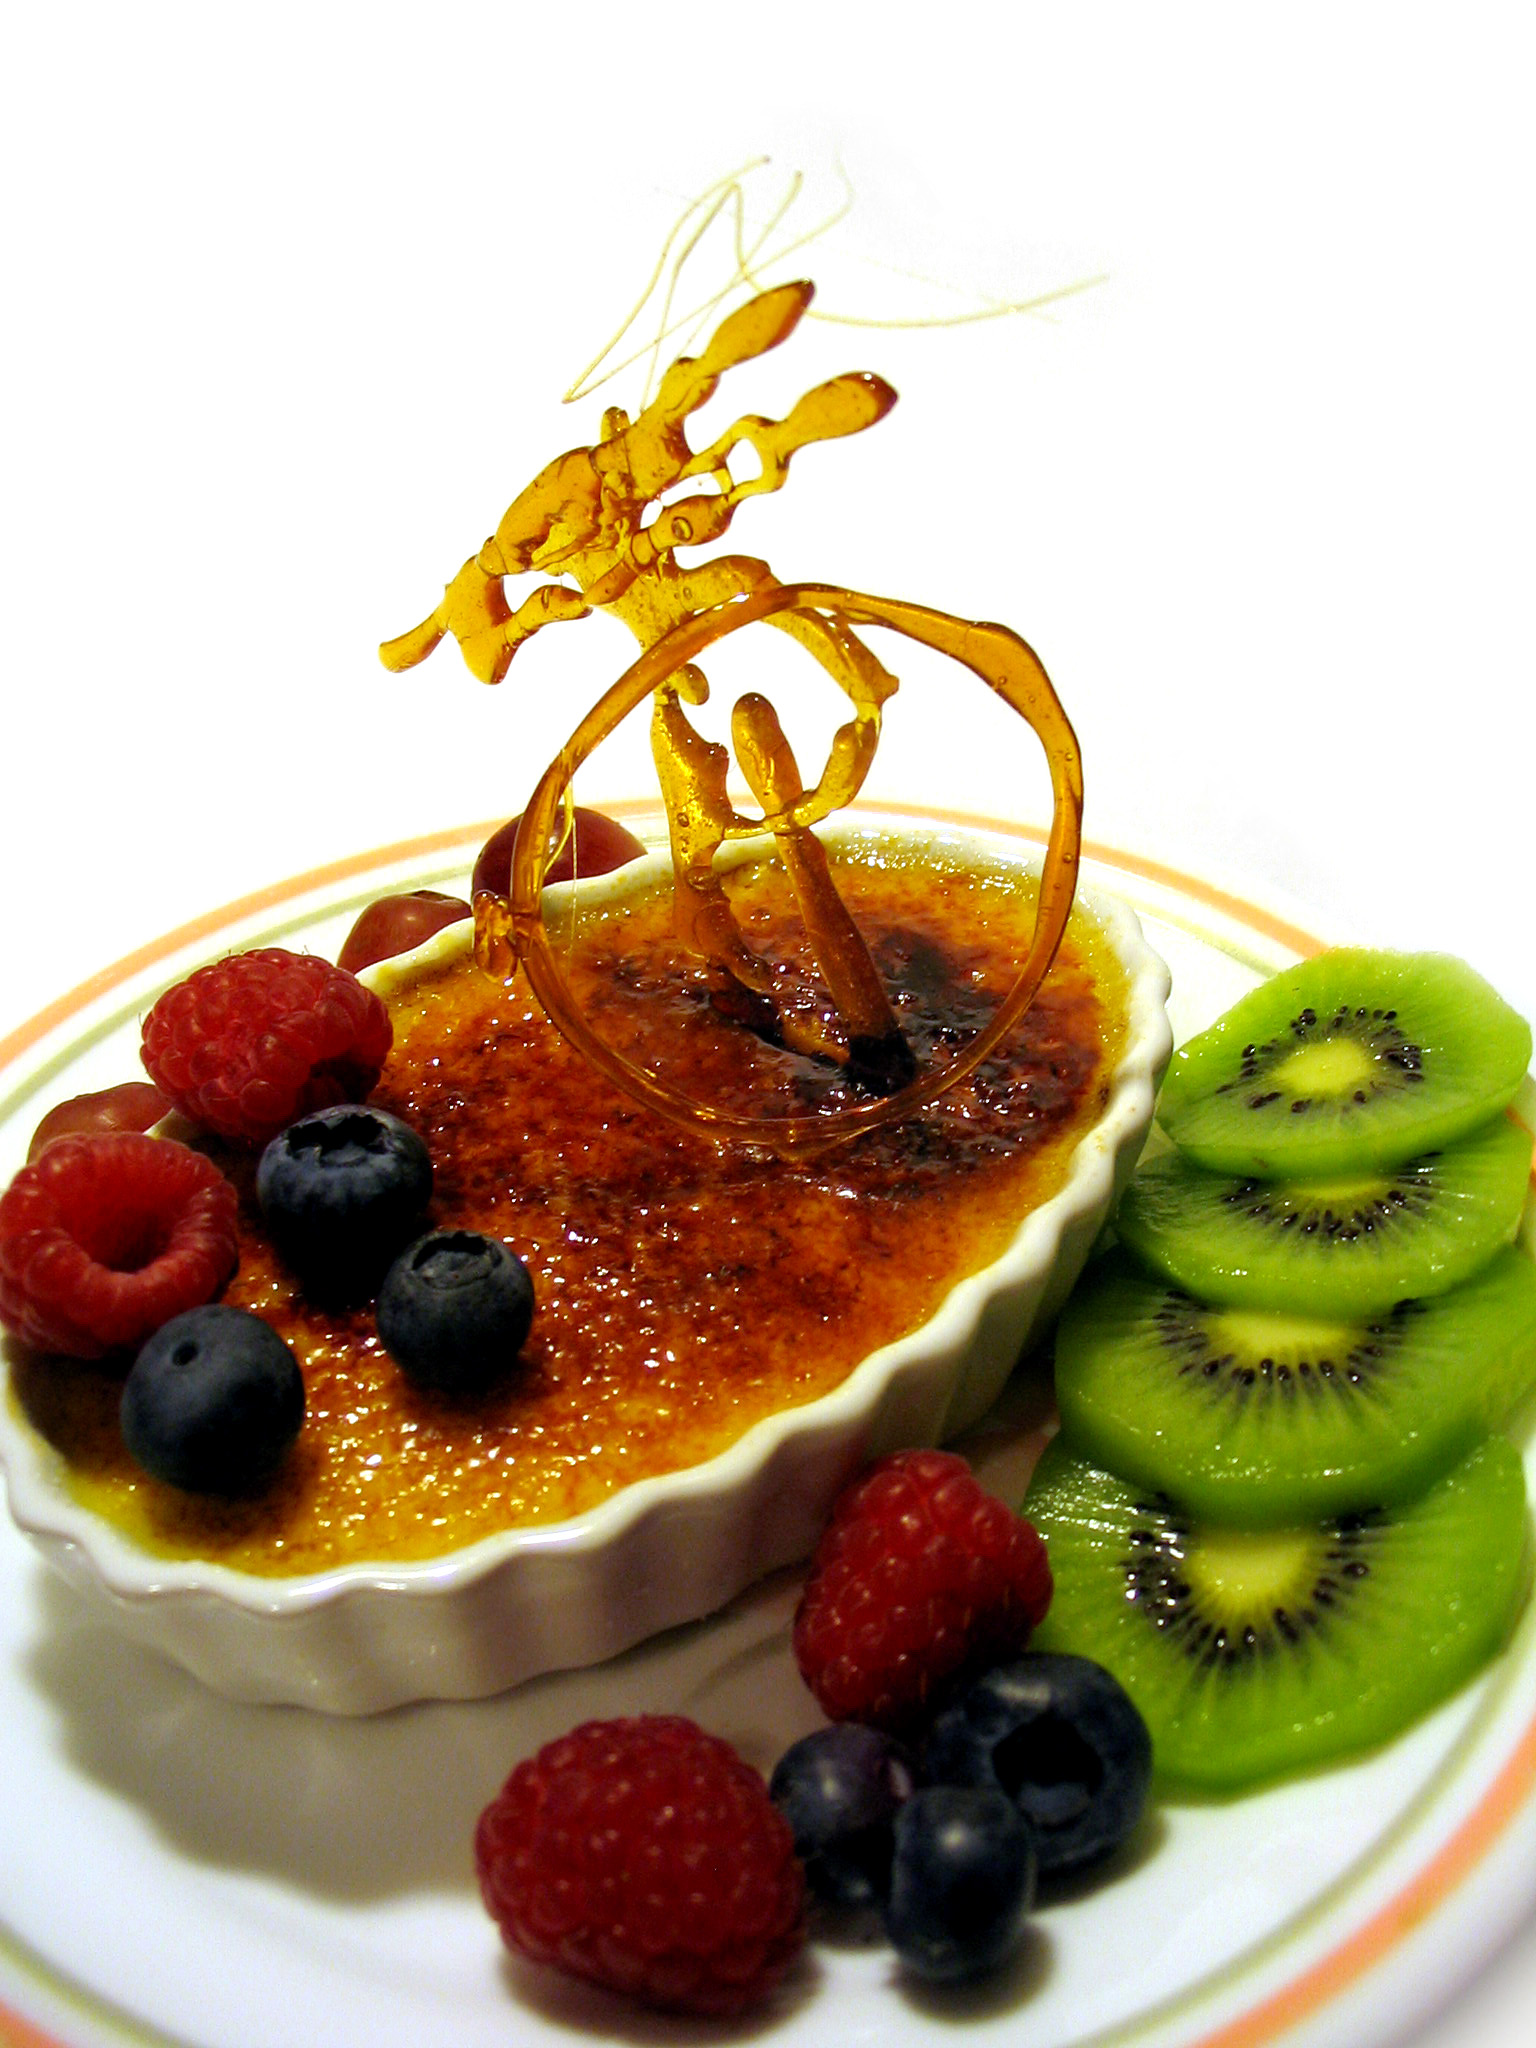 https://i0.wp.com/www.eatfoo.com/files/images/20060702_-_creme_brulee/IMG_6180.jpg